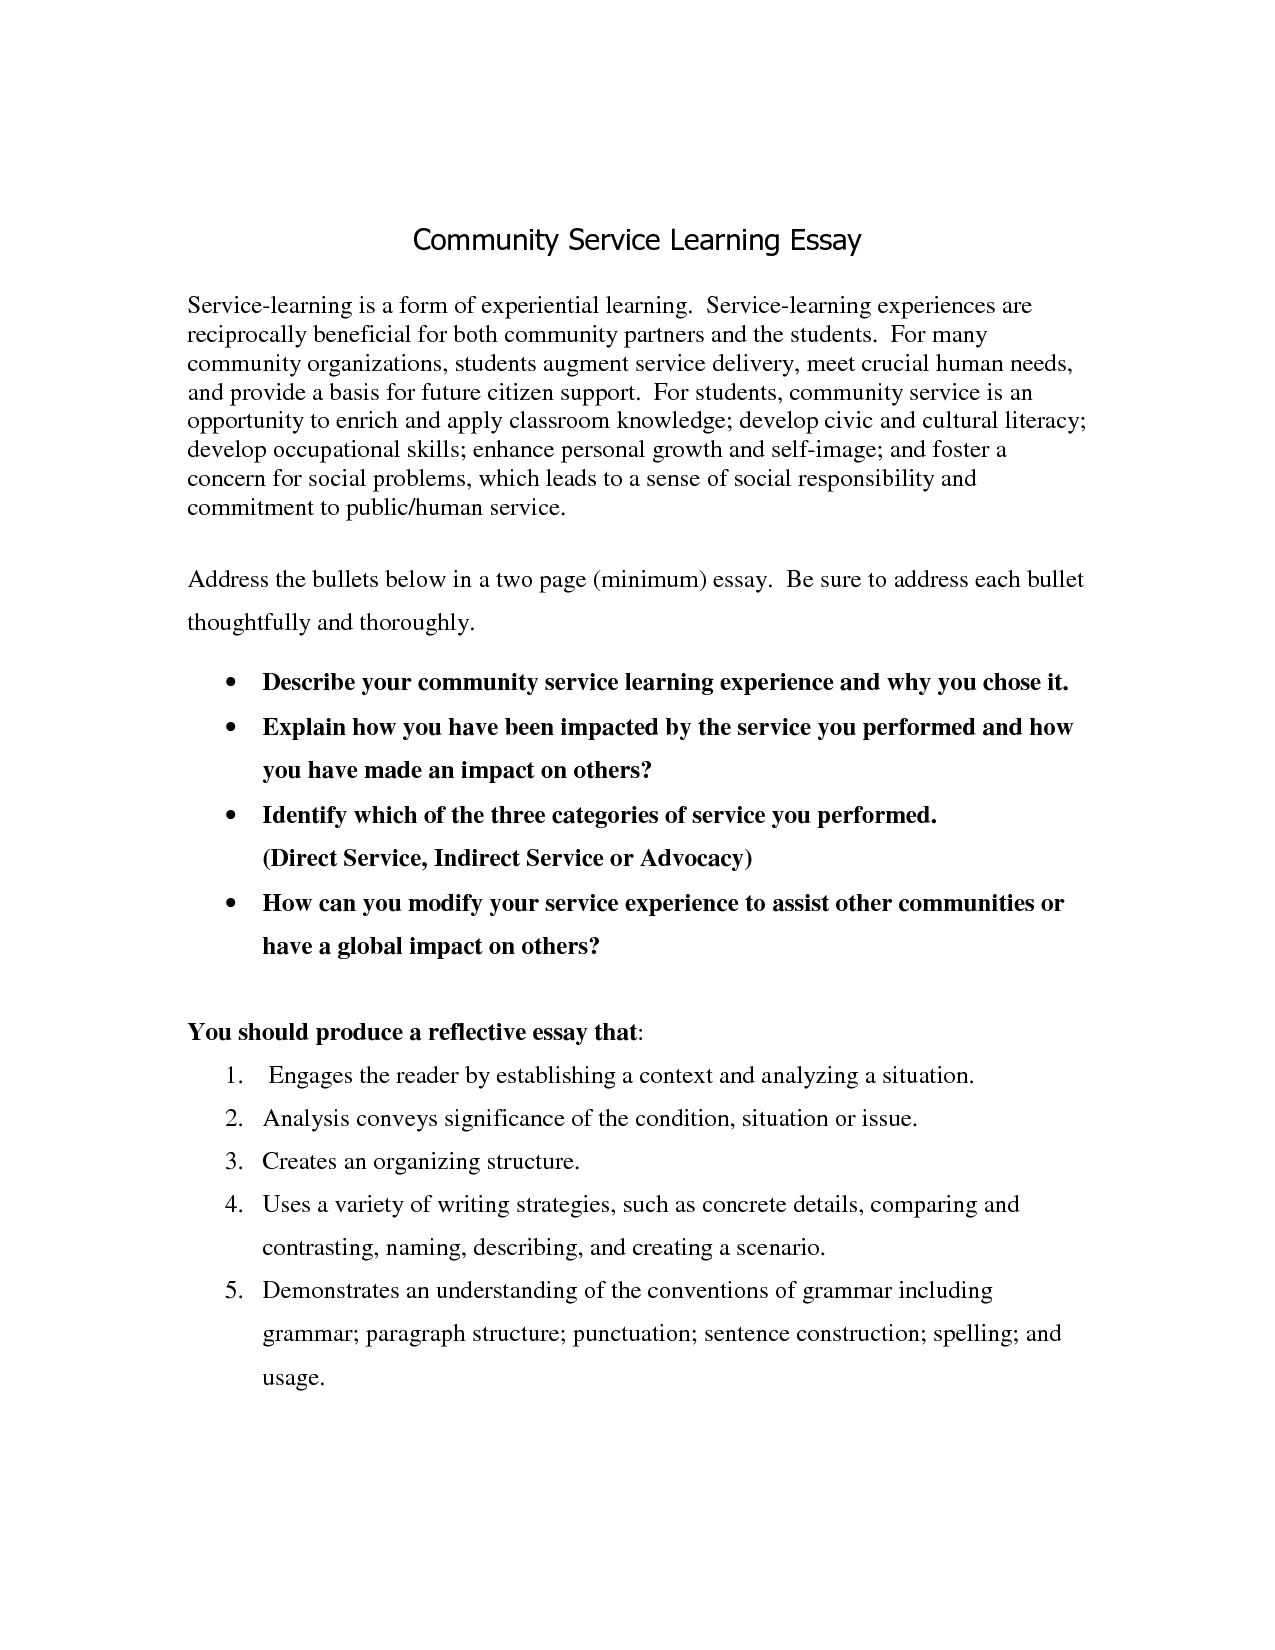 Service learning experience essay